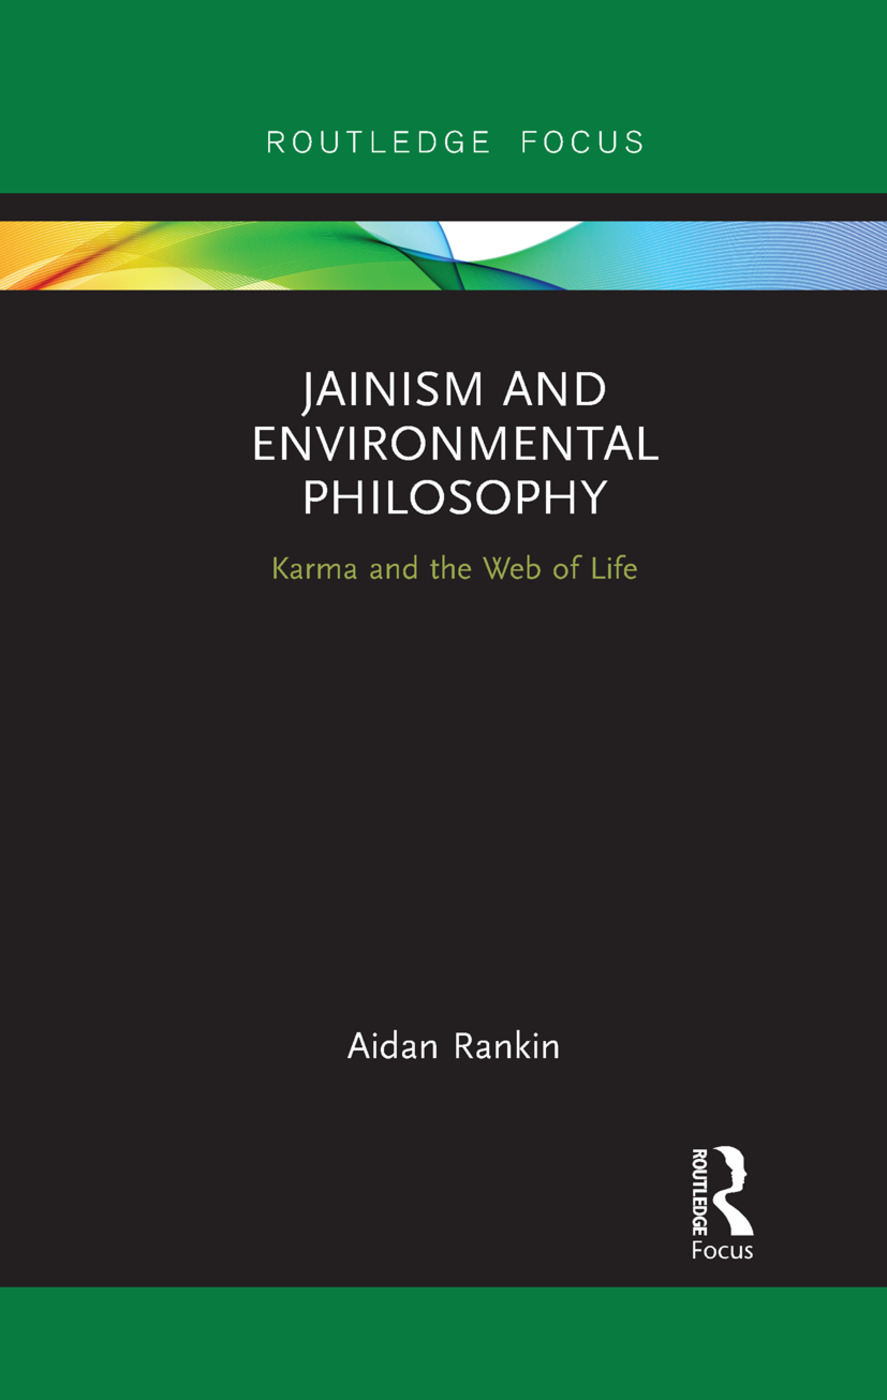 Jainism and Environmental Philosophy: Karma and the Web of Life book cover